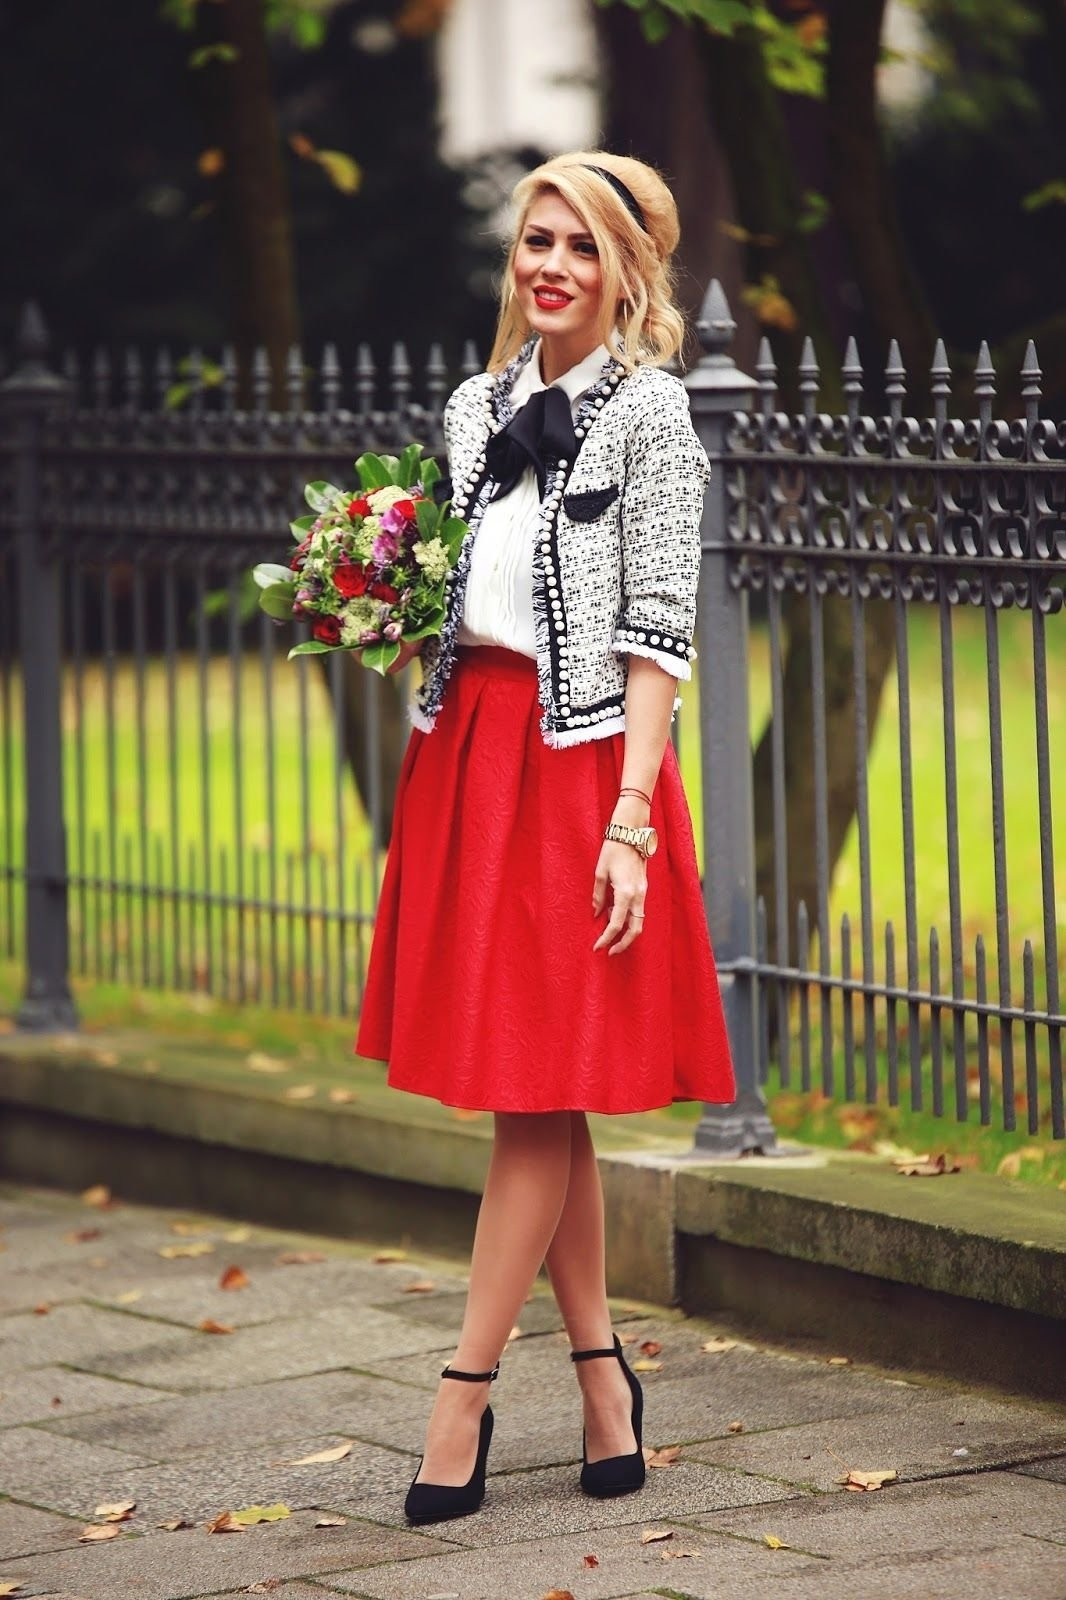 10 Perfect Red Pencil Skirt Outfit Ideas 33 most elegant office skirt outfits to inspire you this year 2020